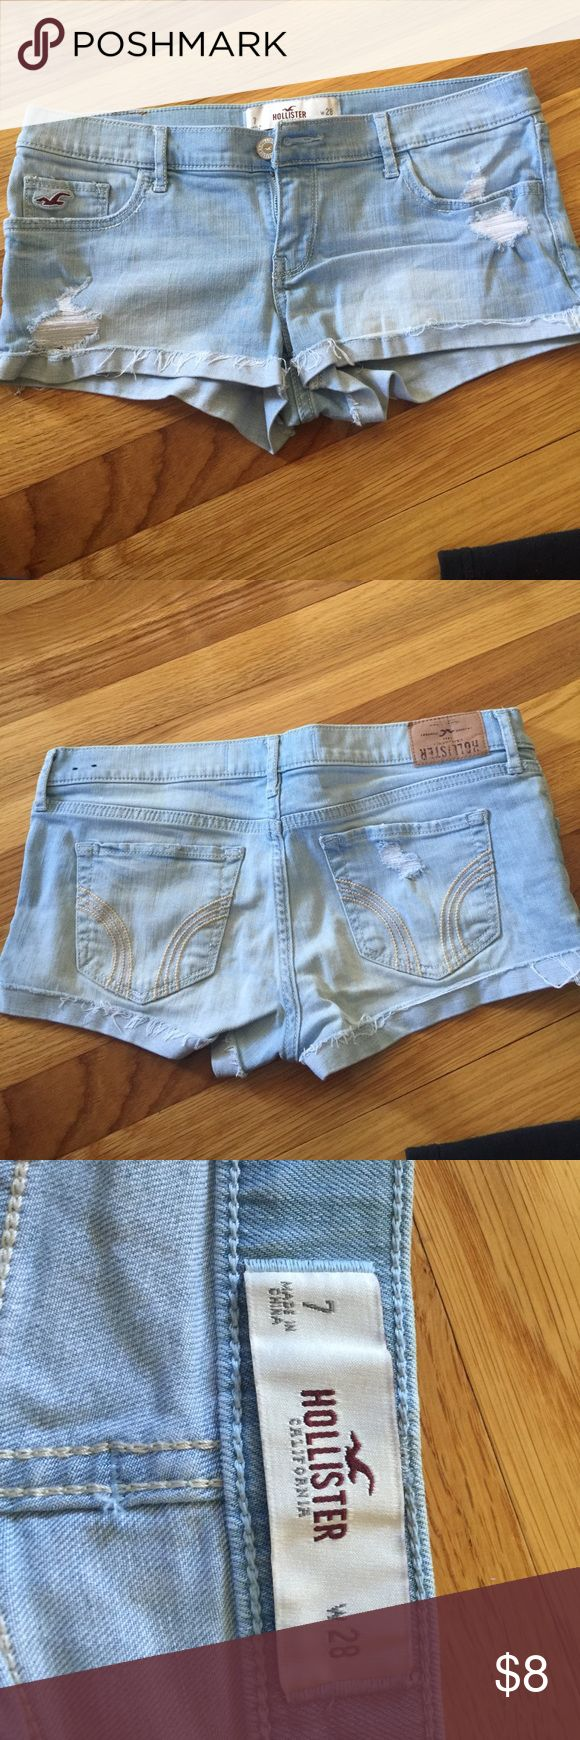 Never worn size 7 hollister jean shorts Only thing wrong is they made the label upside down. Hollister Shorts Jean Shorts